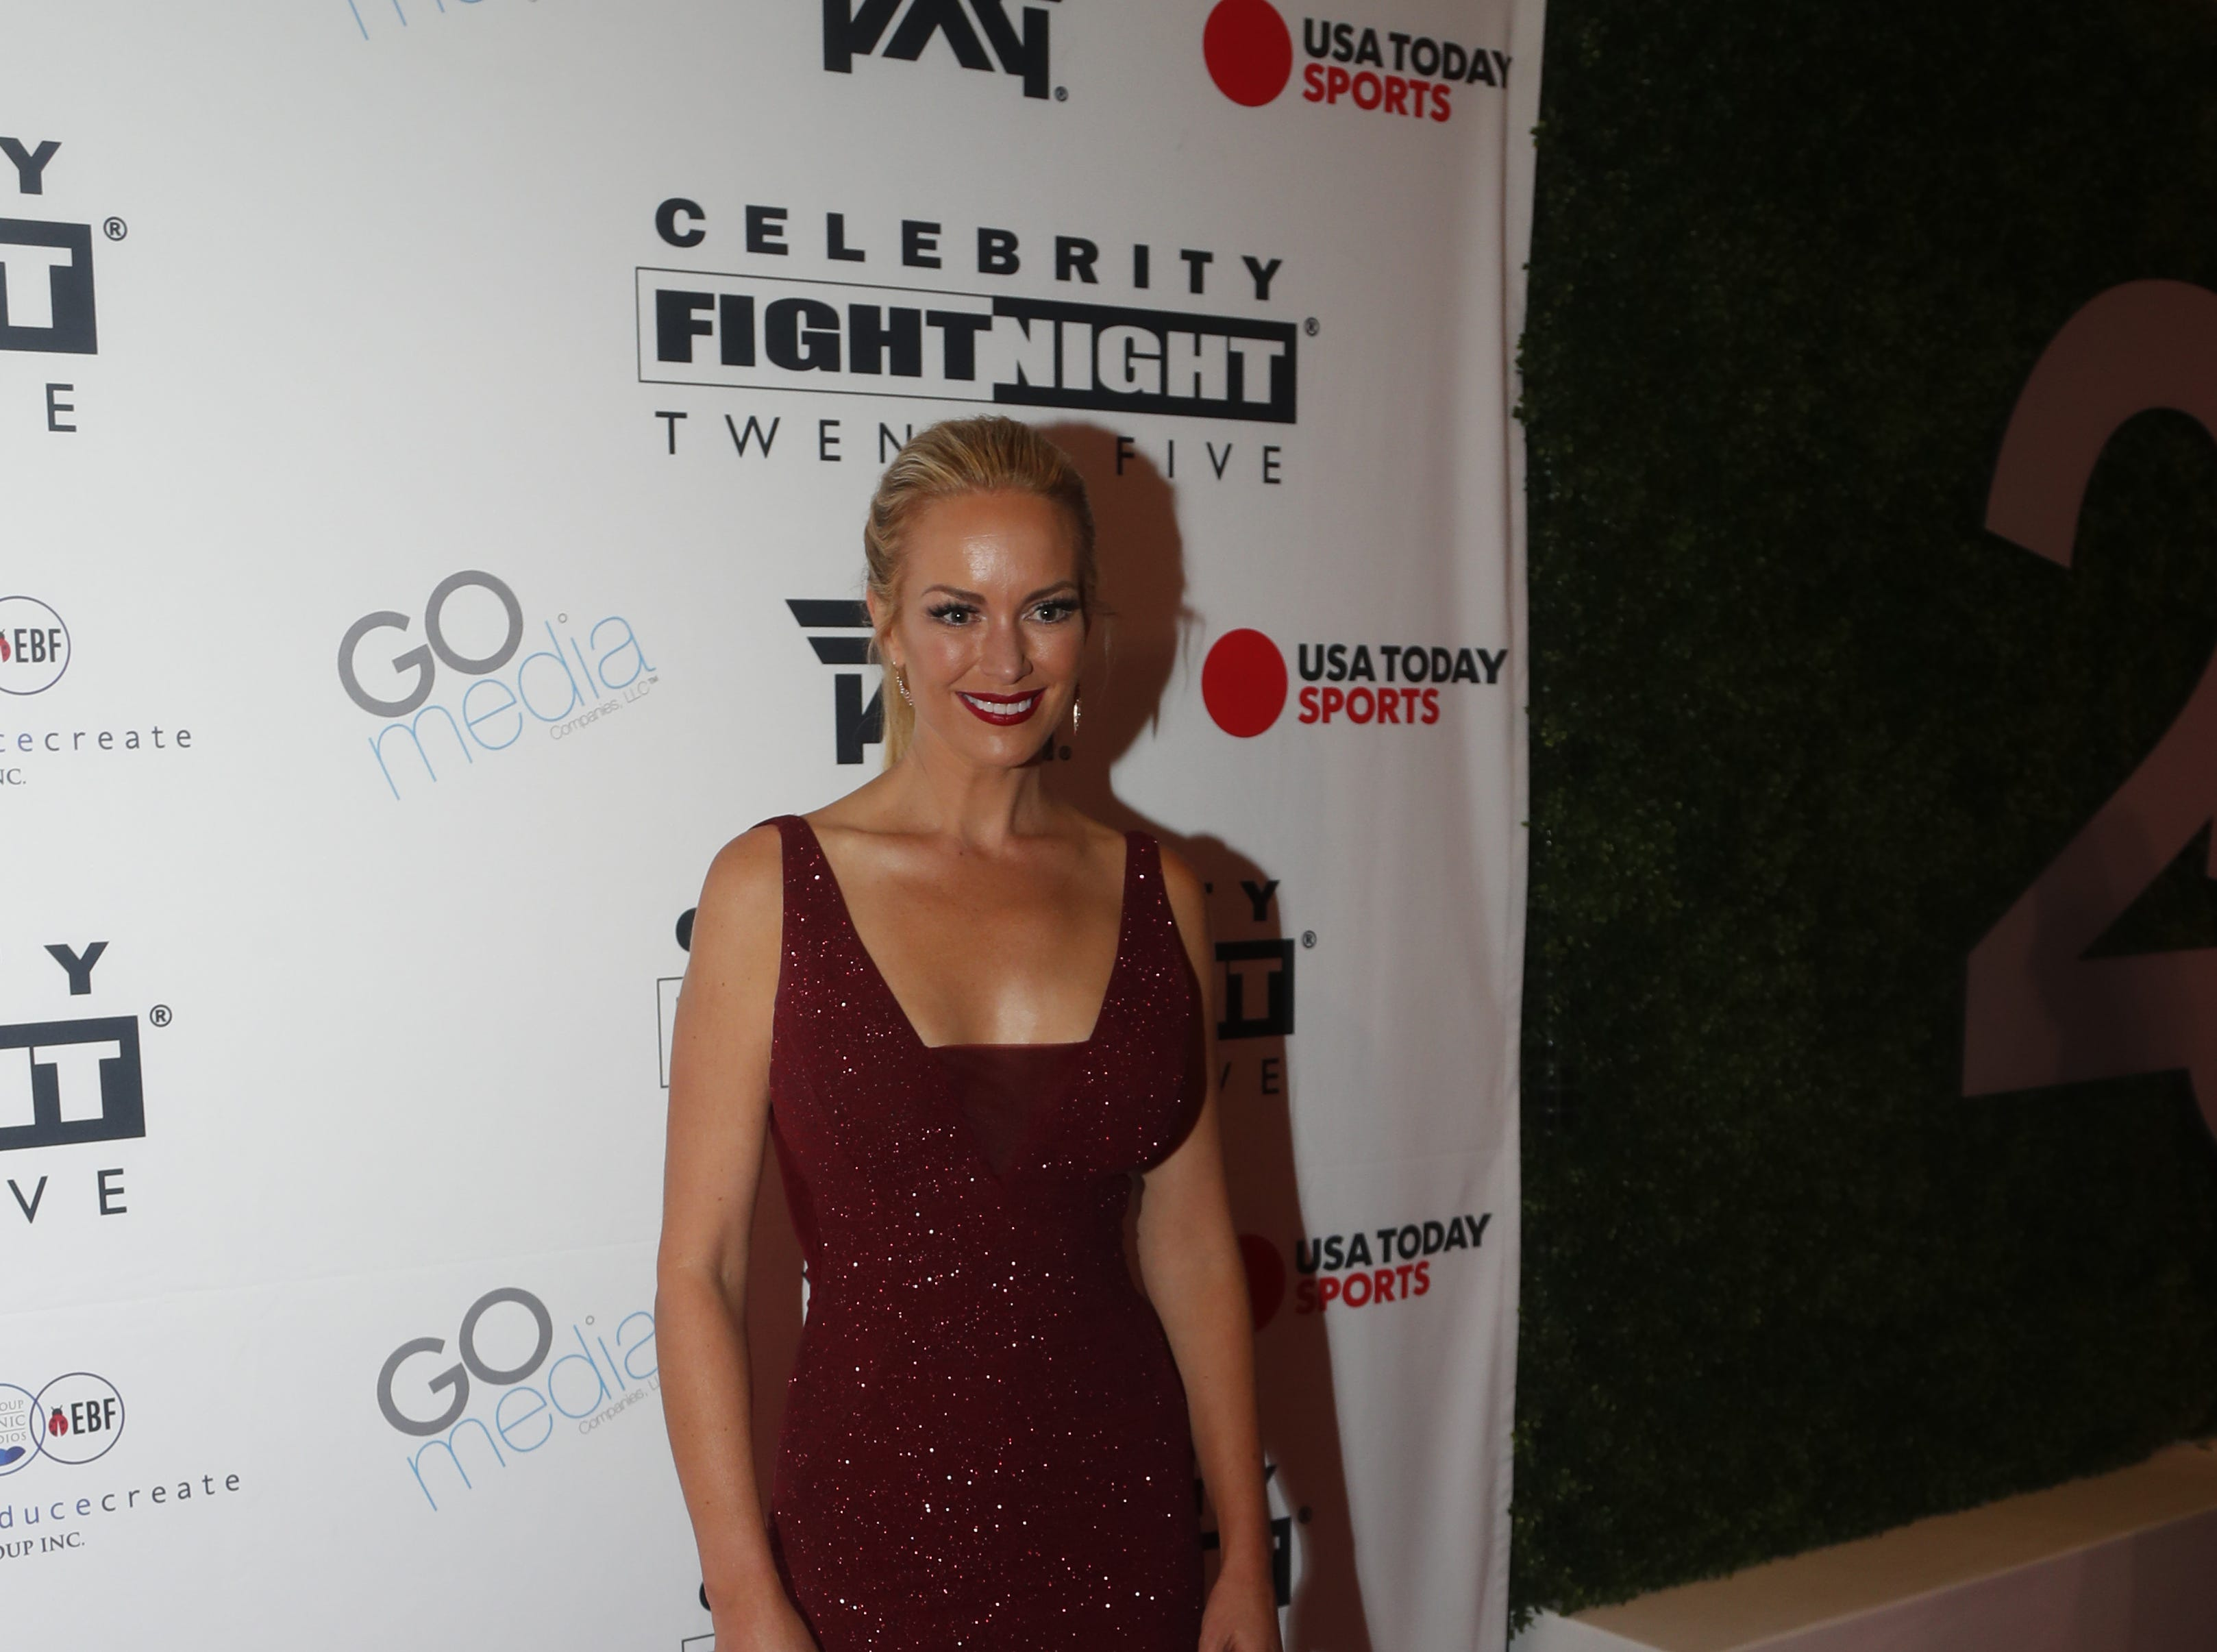 Caroline Campbell poses for pictures during the Celebrity Fight Night red carpet in Scottsdale, Ariz., on March 23, 2019.